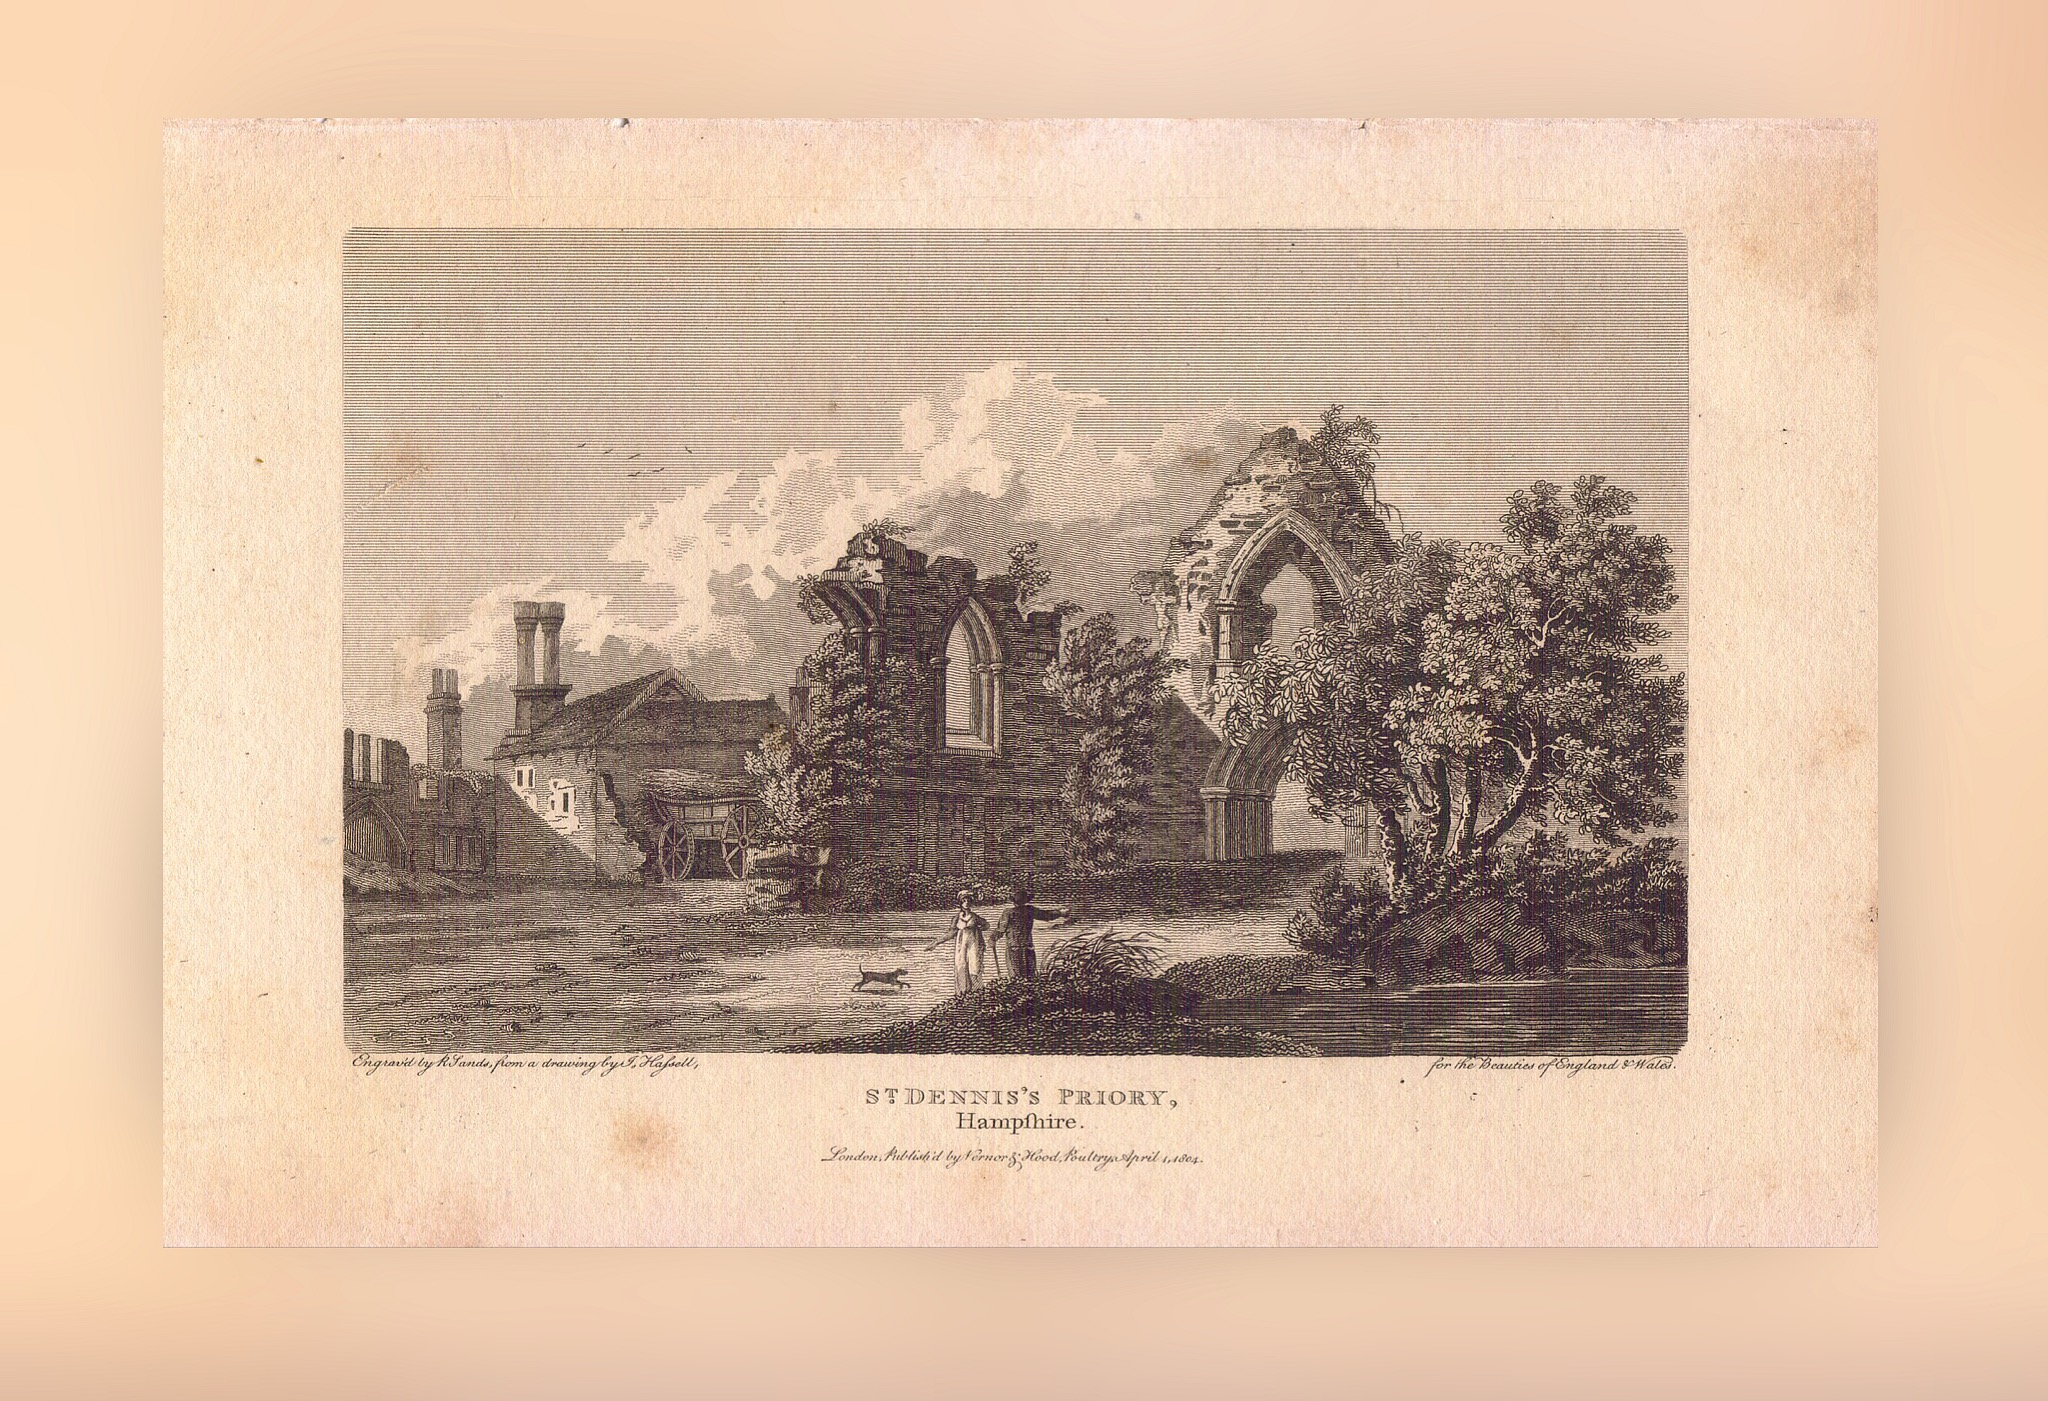 St Denys Priory Engraved by R Sands from a drawing by J Halsell